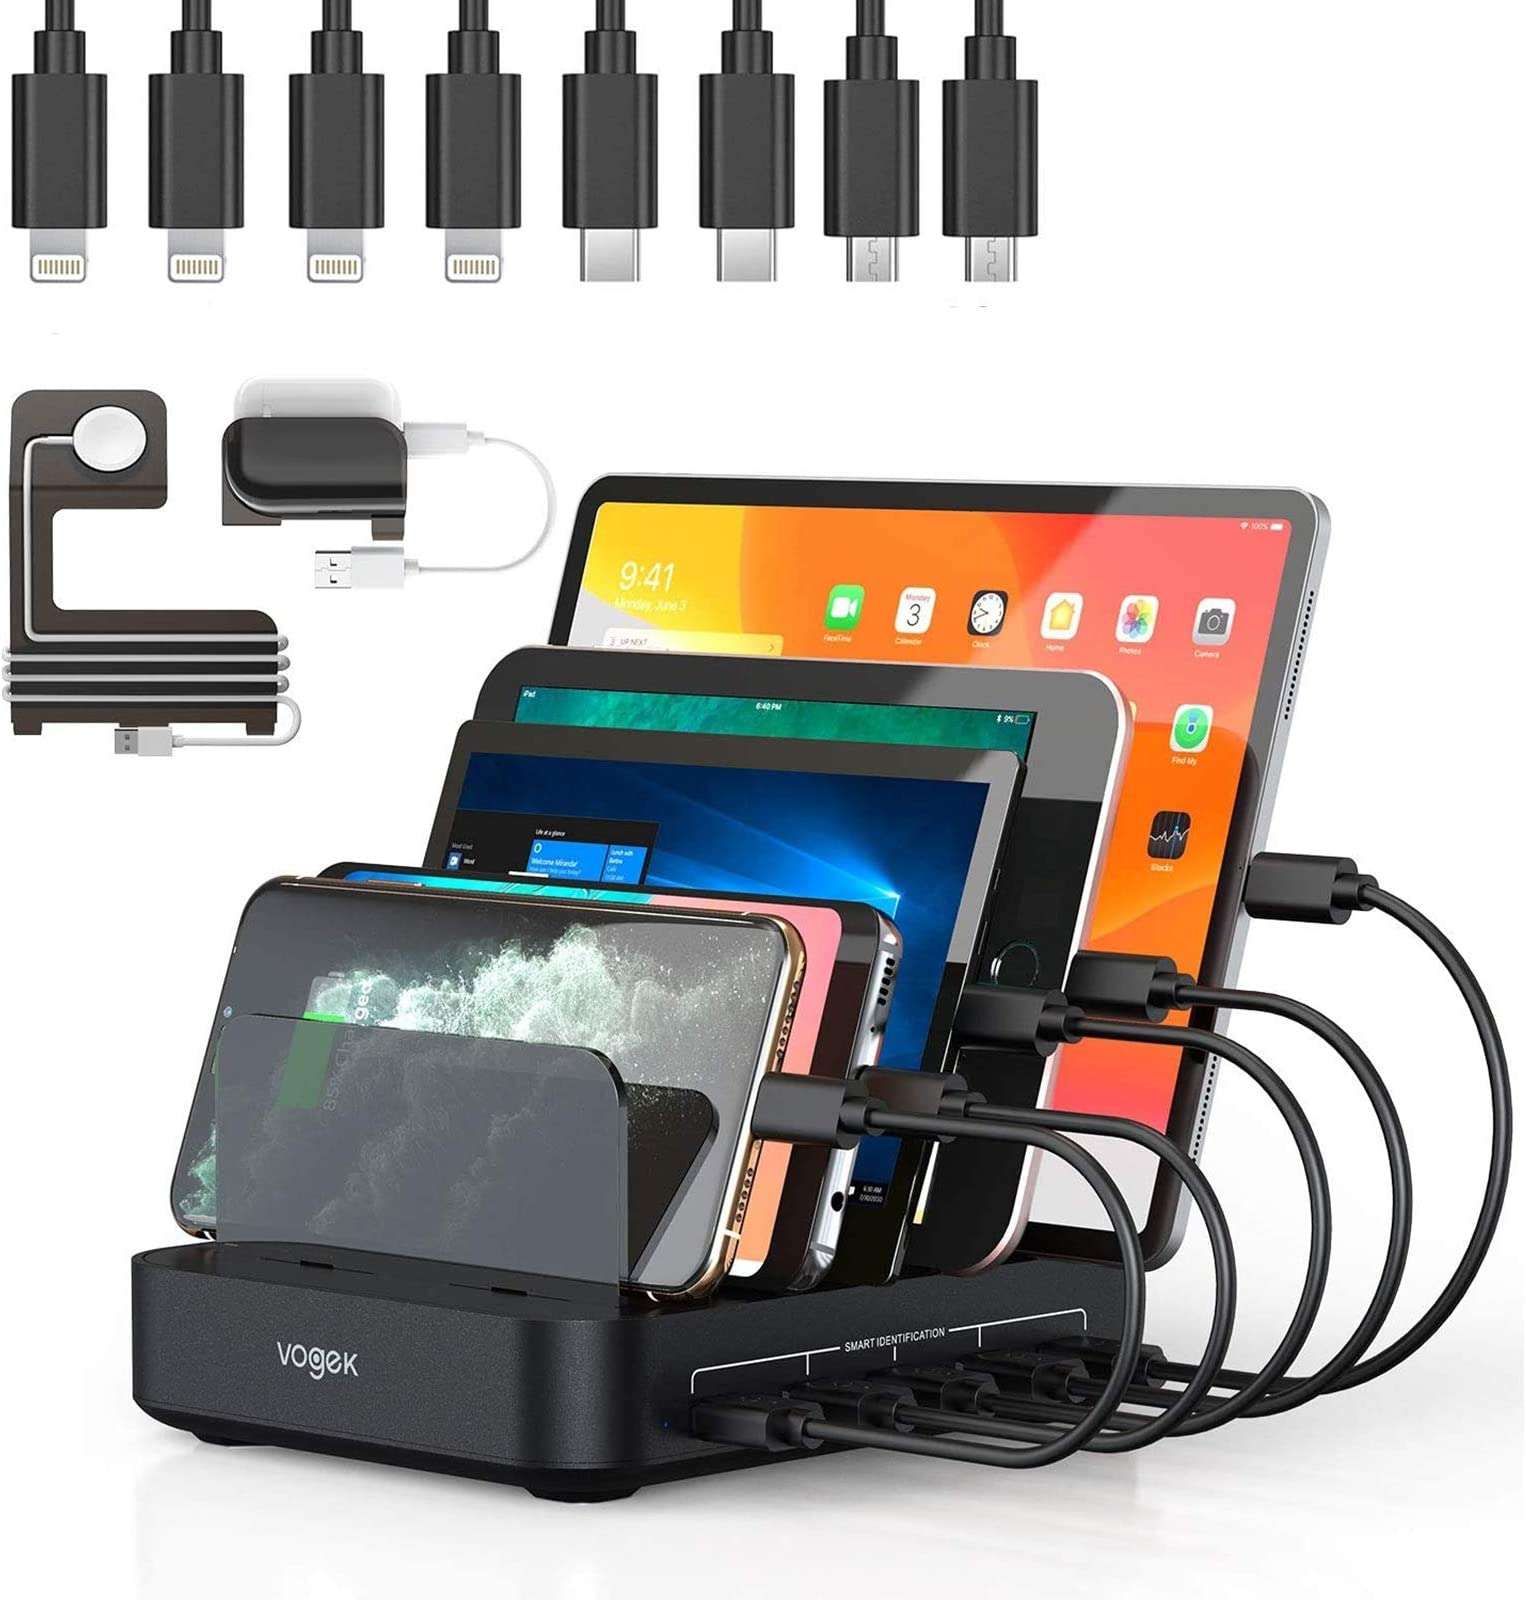 Vogek 50W Charging Station for Multiple Devices, 5 USB Fast Ports with 8 Short Mixed Cables Watch & Airpod Stand Included for Cell Phones, Smart Phones, Tablets, iWatch, Airpods -Black